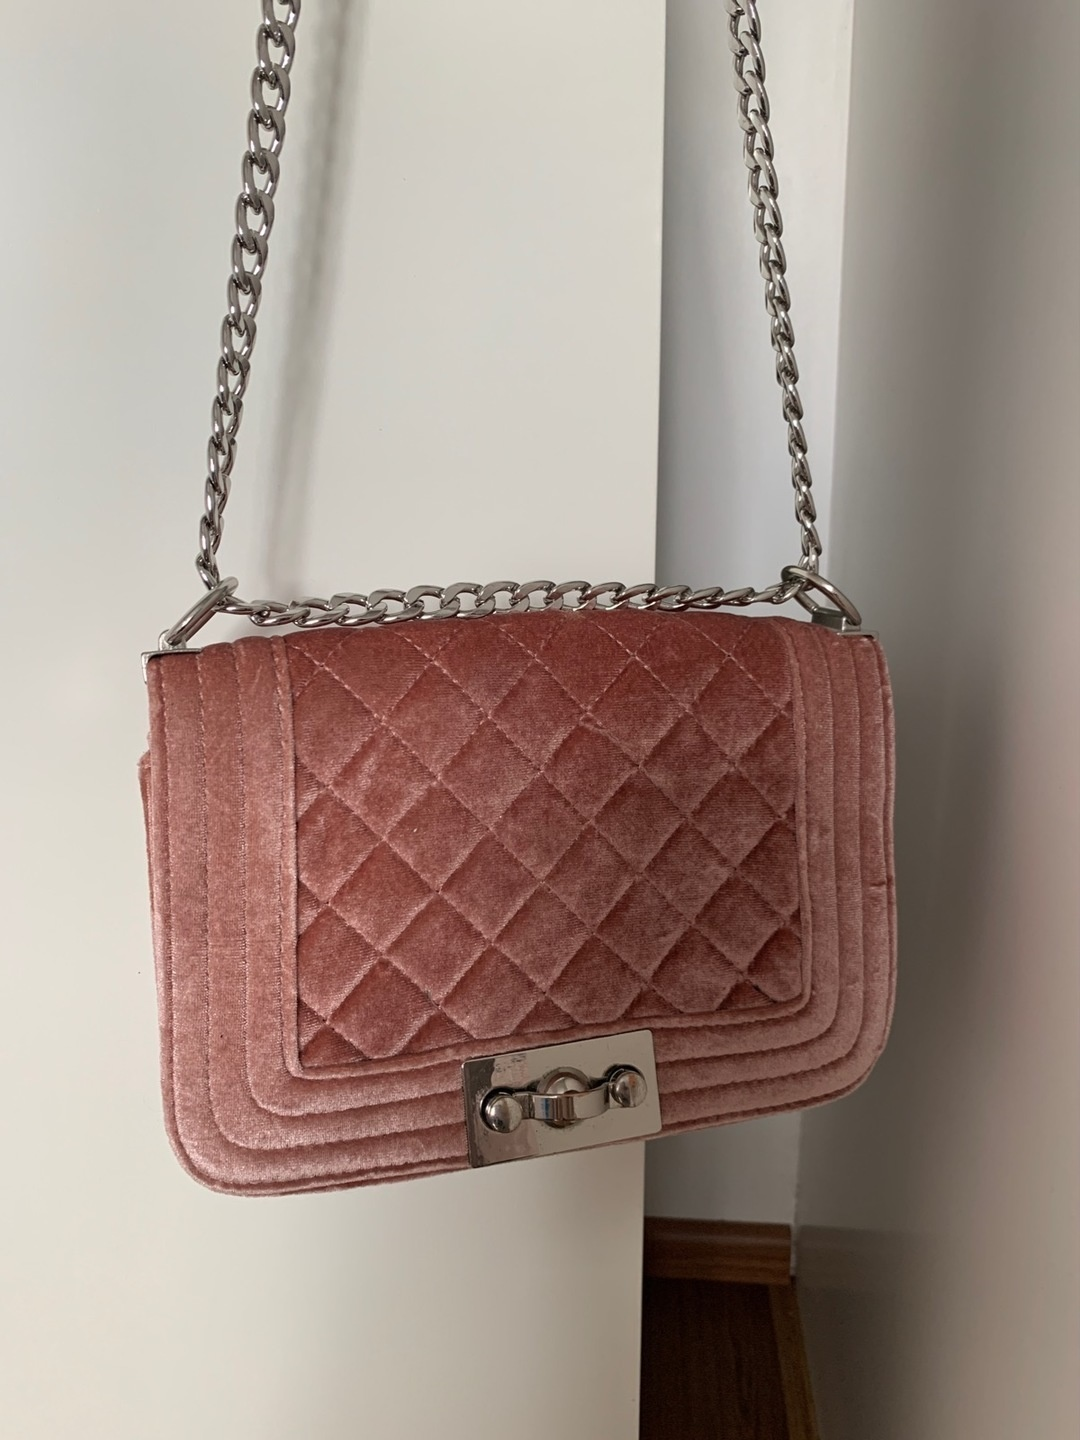 Women's bags & purses - GINA TRICOT photo 1